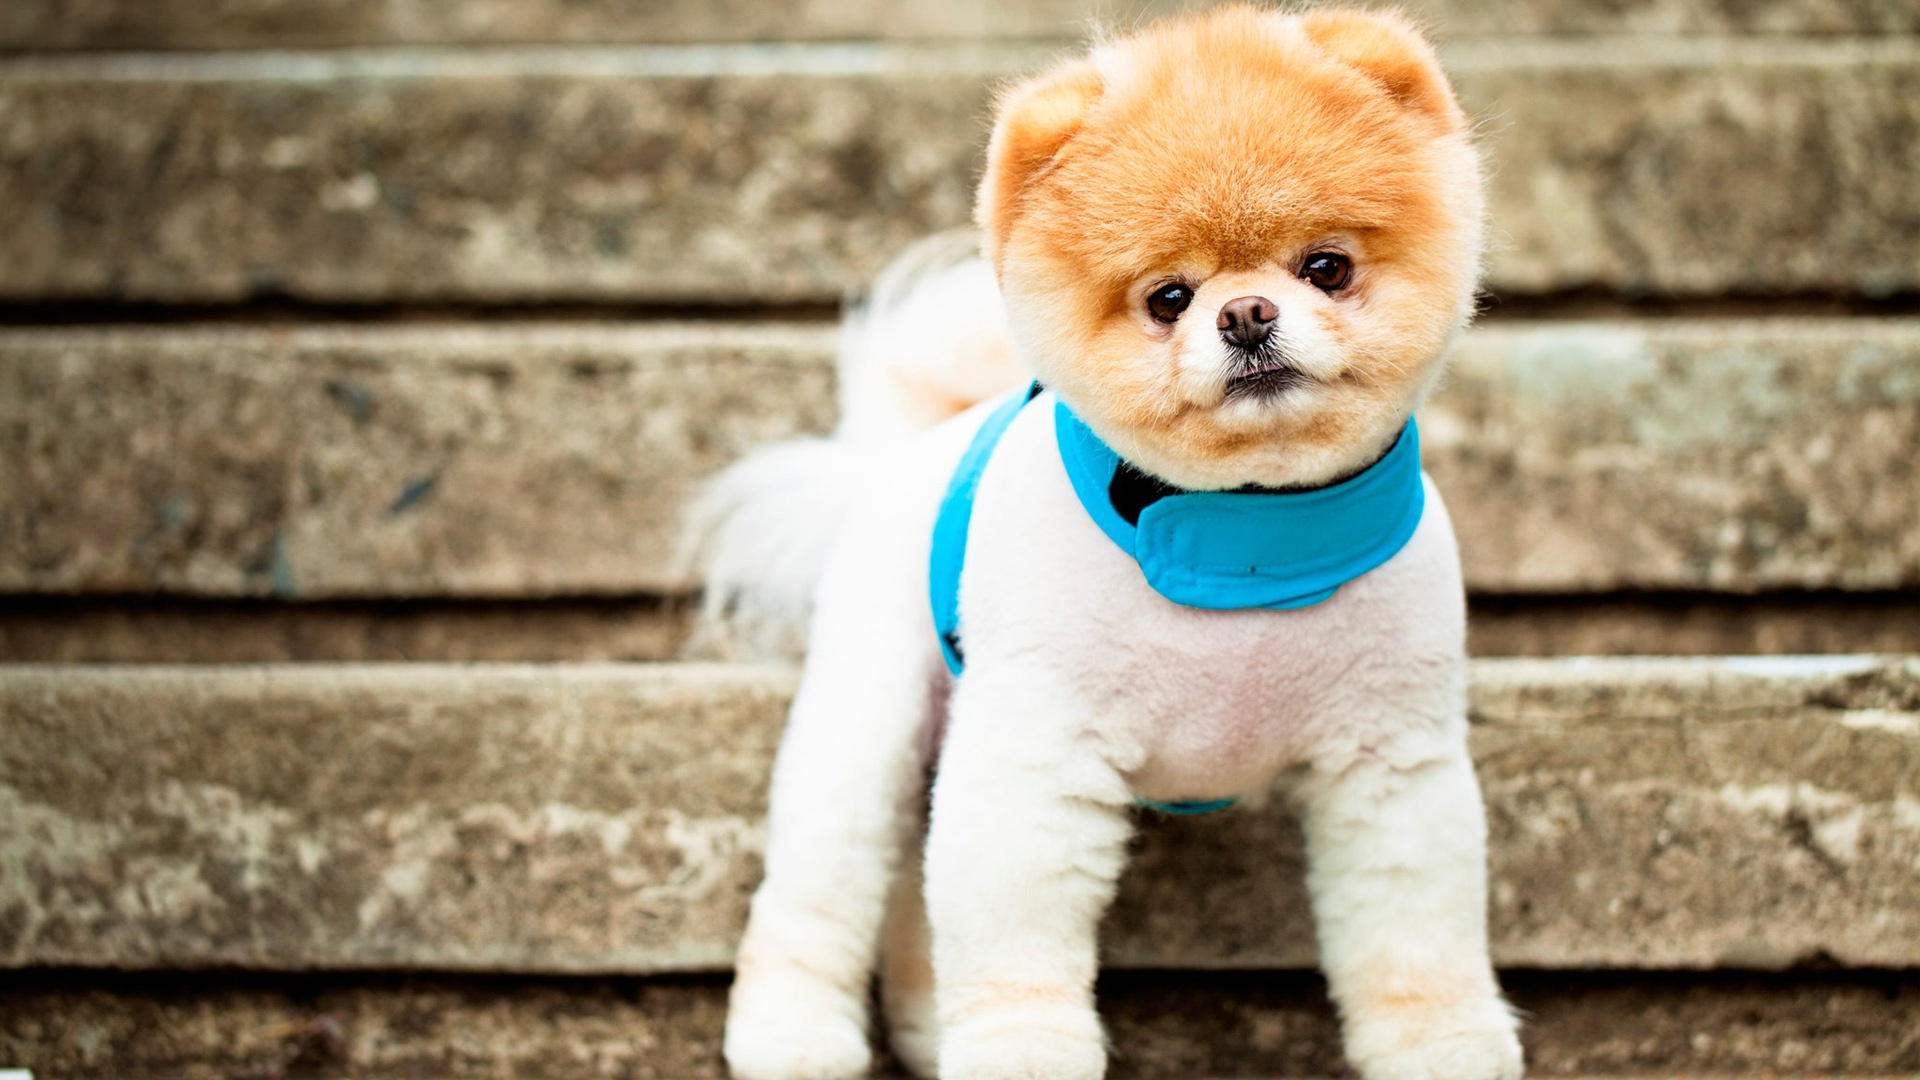 boo the cutest dog wallpapers in jpg format for free download